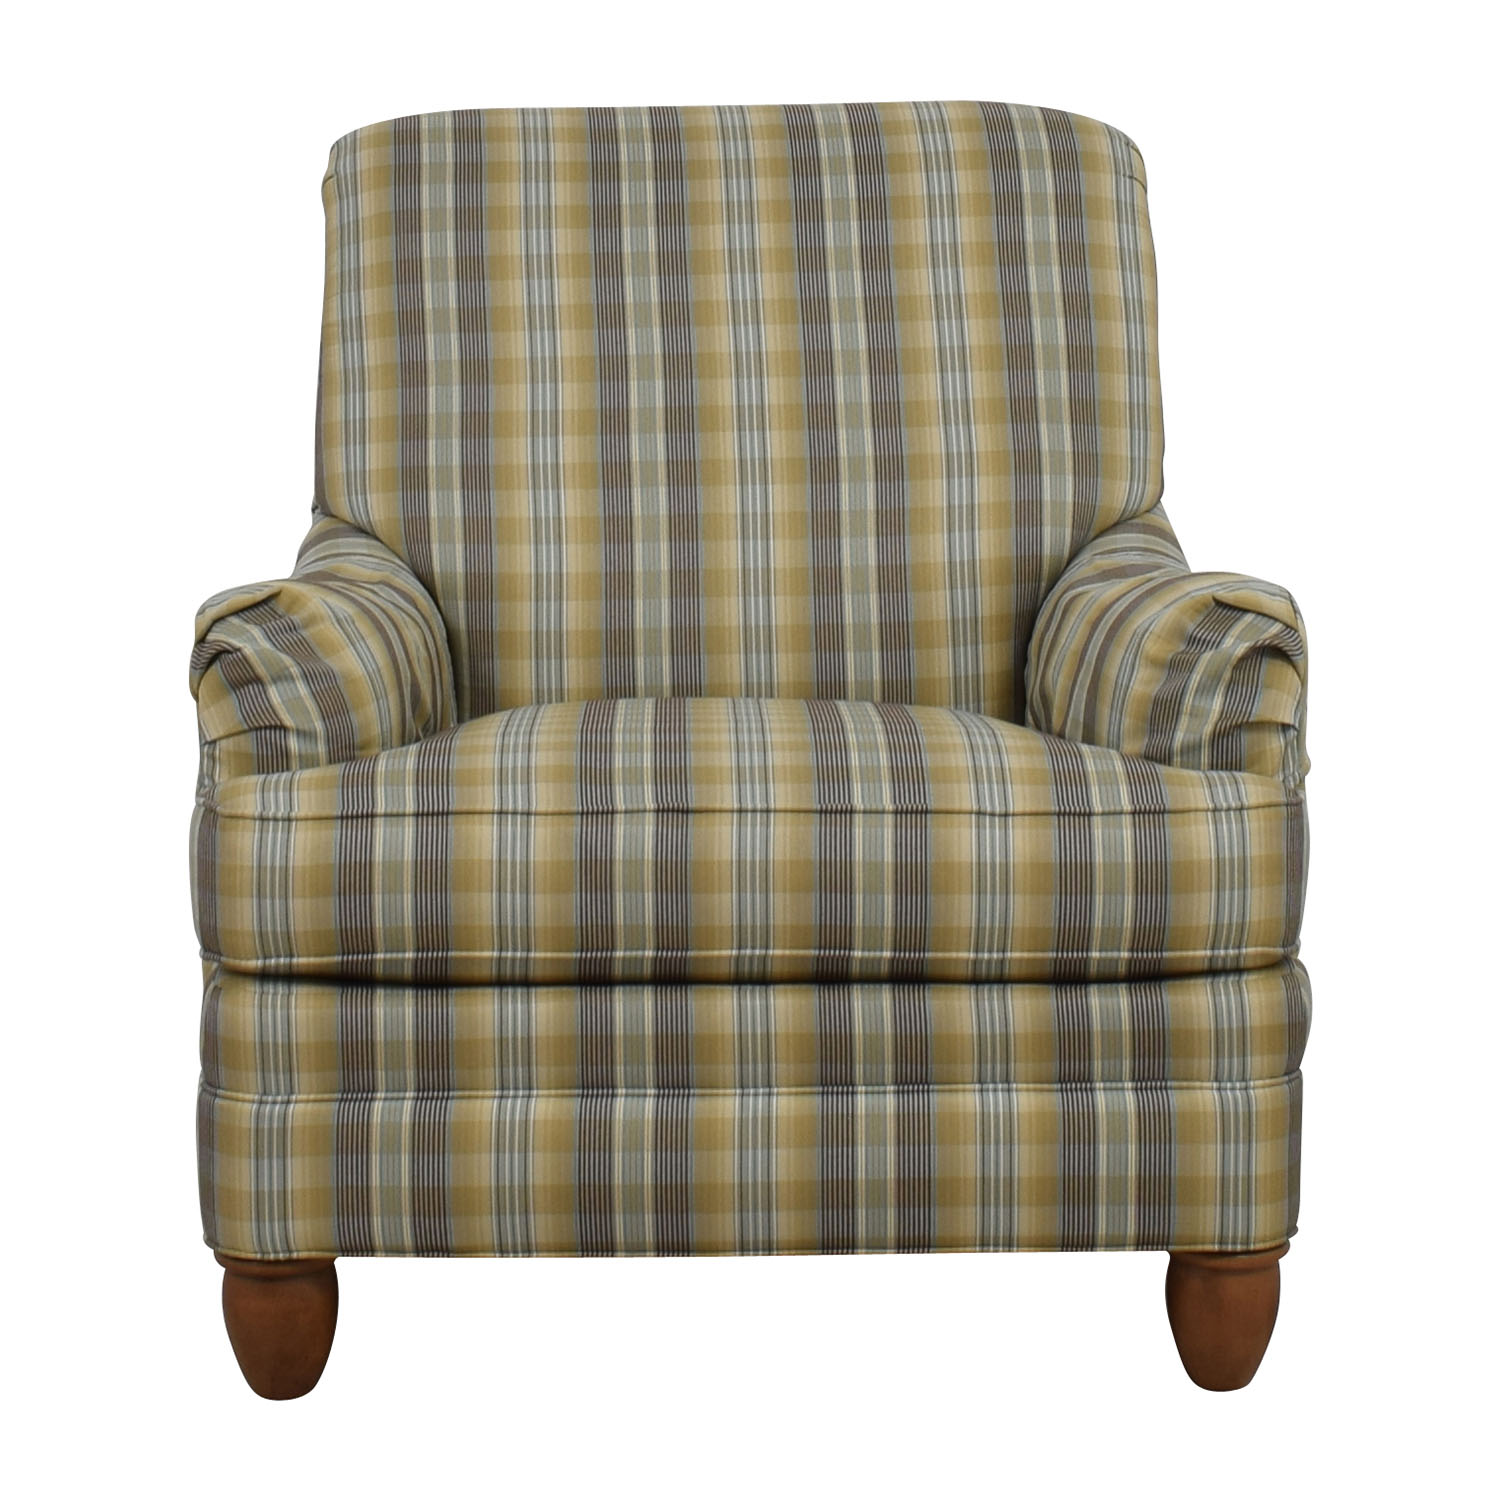 Ethan Allen Ethan Allen Plaid Arm Chair dimensions